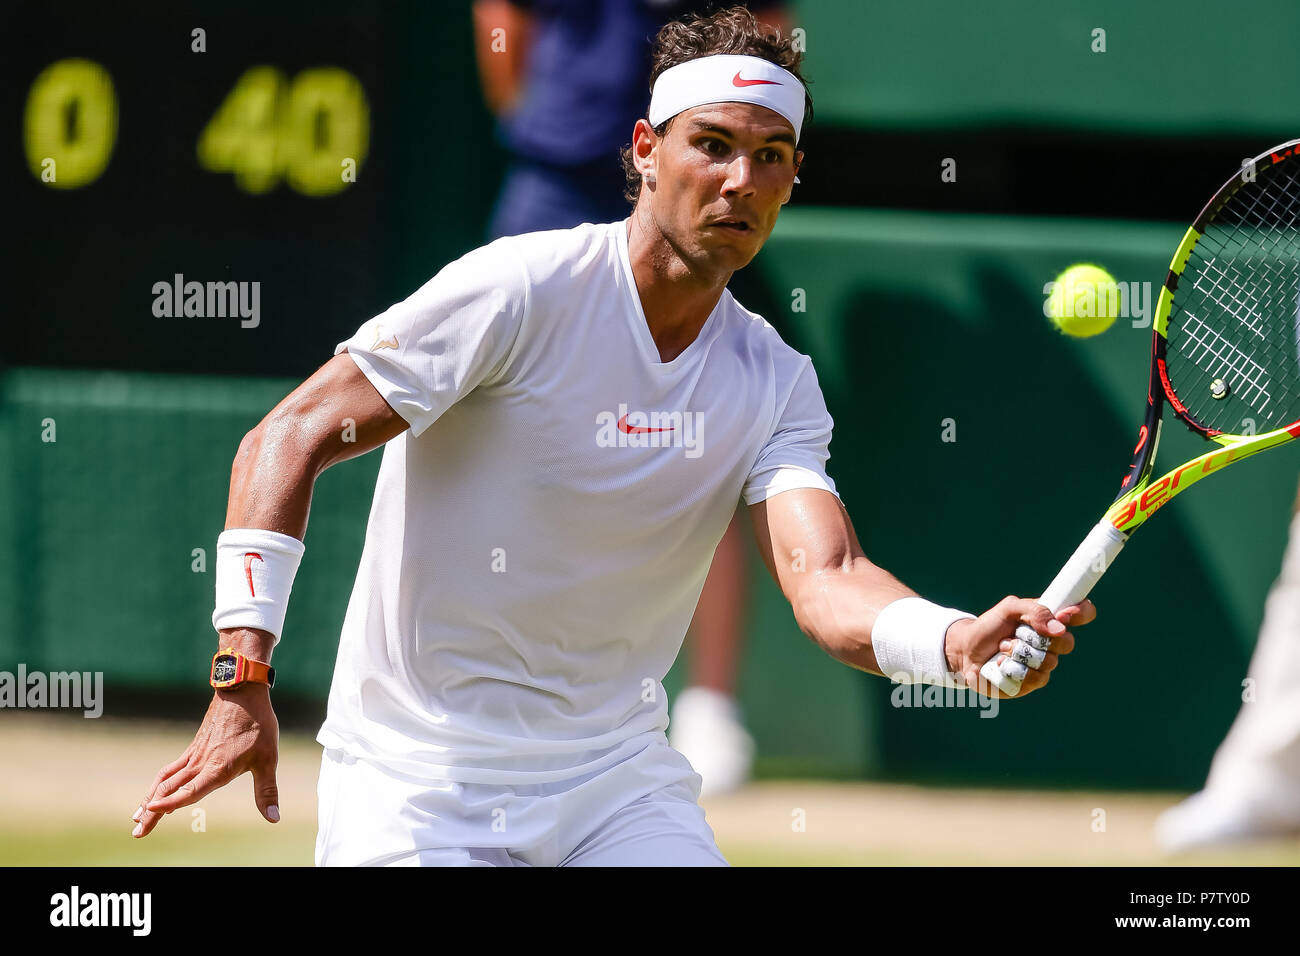 London, UK, 7th July 2018: Rafael Nadal from Spain books his 4th round spot at Day 6 at the Wimbledon Tennis Championships 2018 at the All England Lawn Tennis and Croquet Club in London. Credit: Frank Molter/Alamy Live news Stock Photo